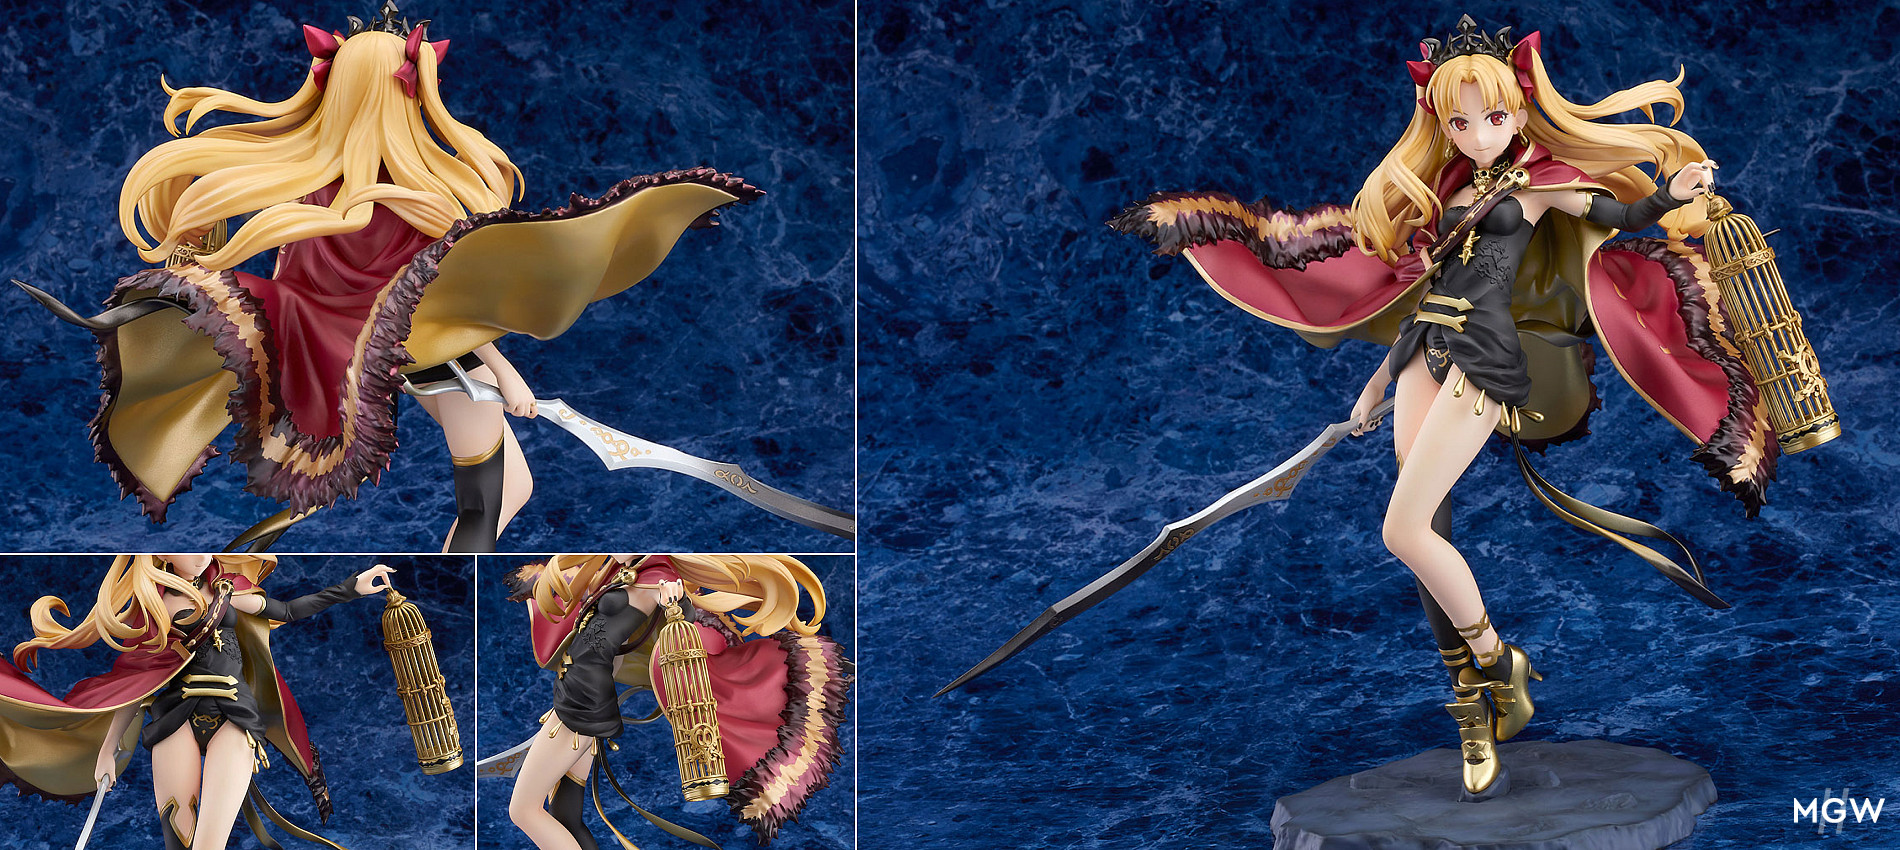 Lancer Ereshkigal by Max Factory from Fate Grand Order MyGrailWatch Anime Figure Guide